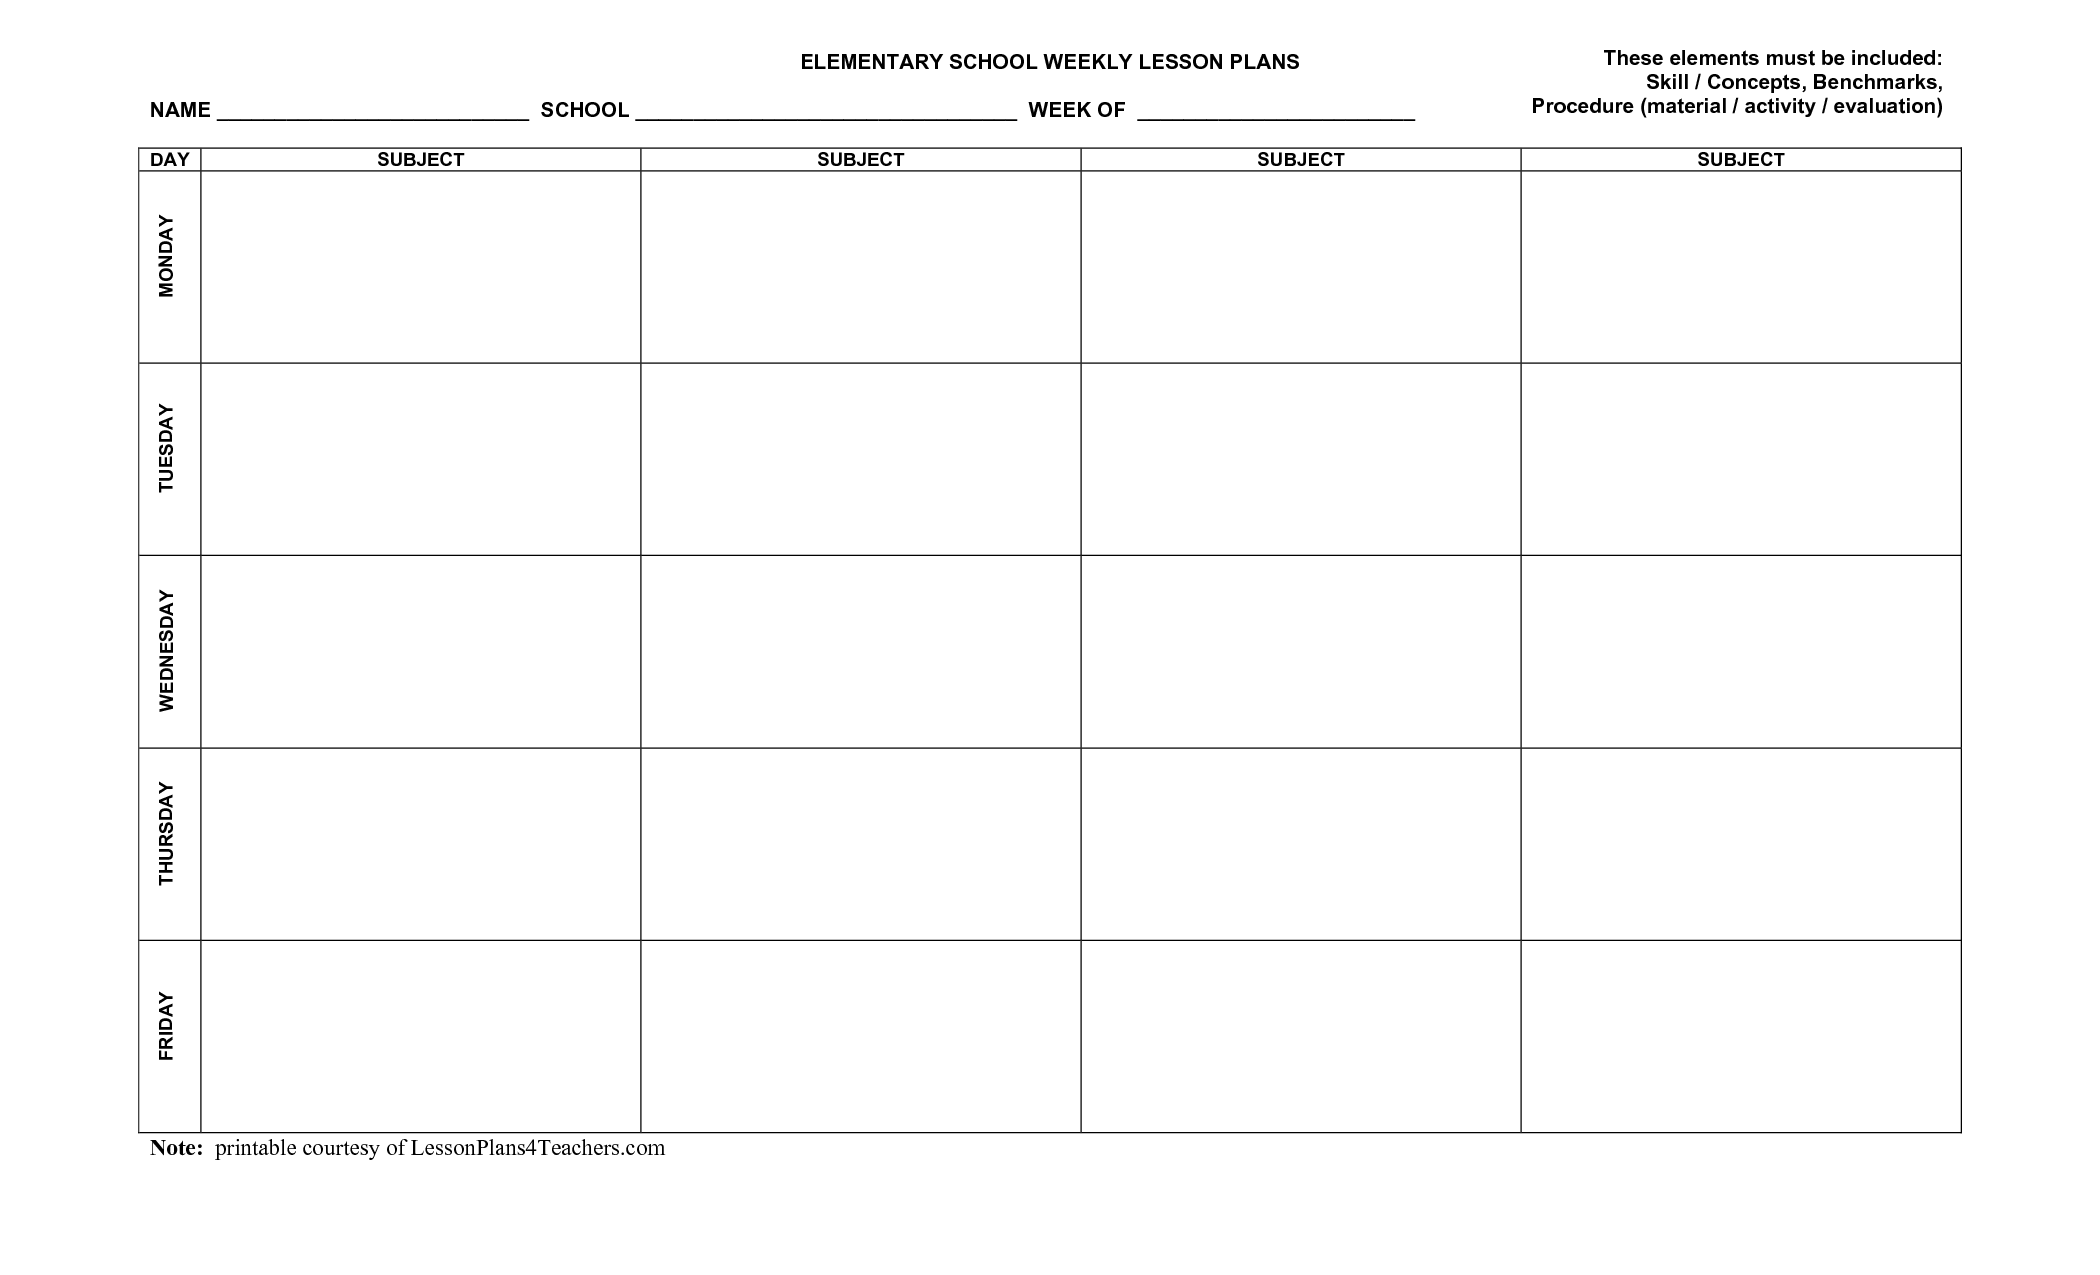 Blank Weekly Lesson Plan Templates school stuff